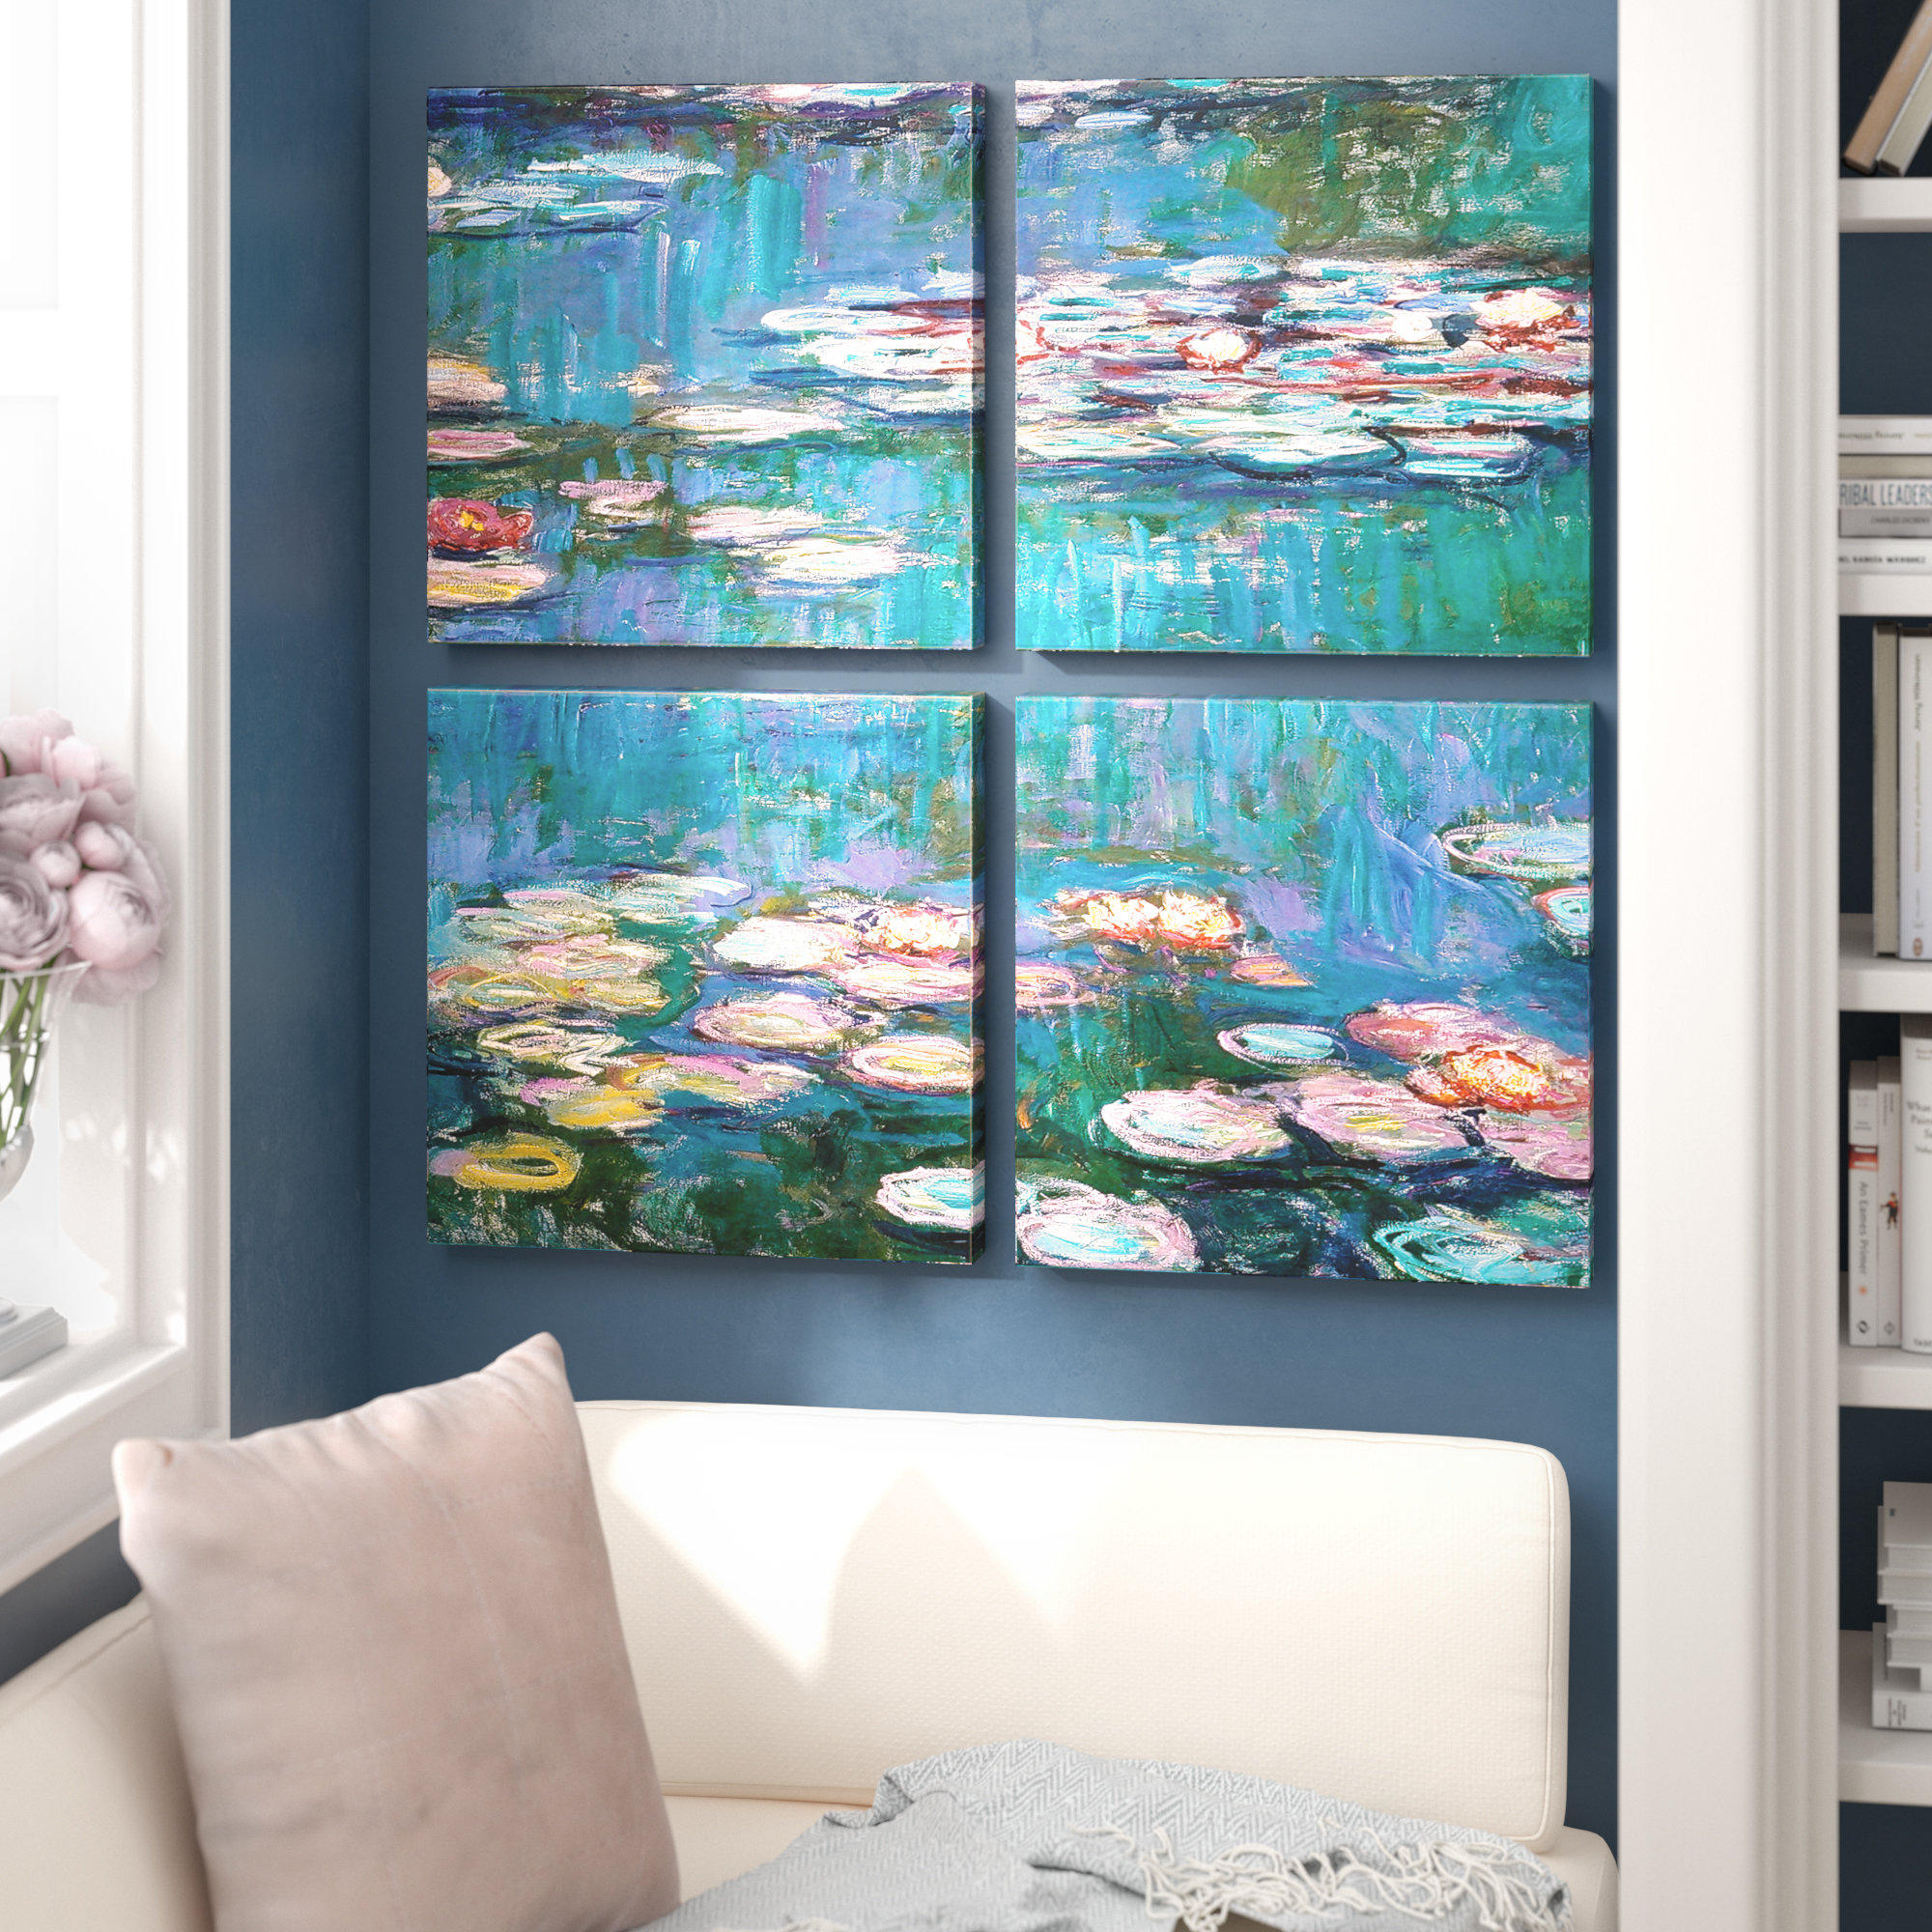 'water Lilies'claude Monet 4 Piece Painting Print On Canvas Set In 4 Piece Wall Decor Sets By Charlton Home (View 9 of 30)